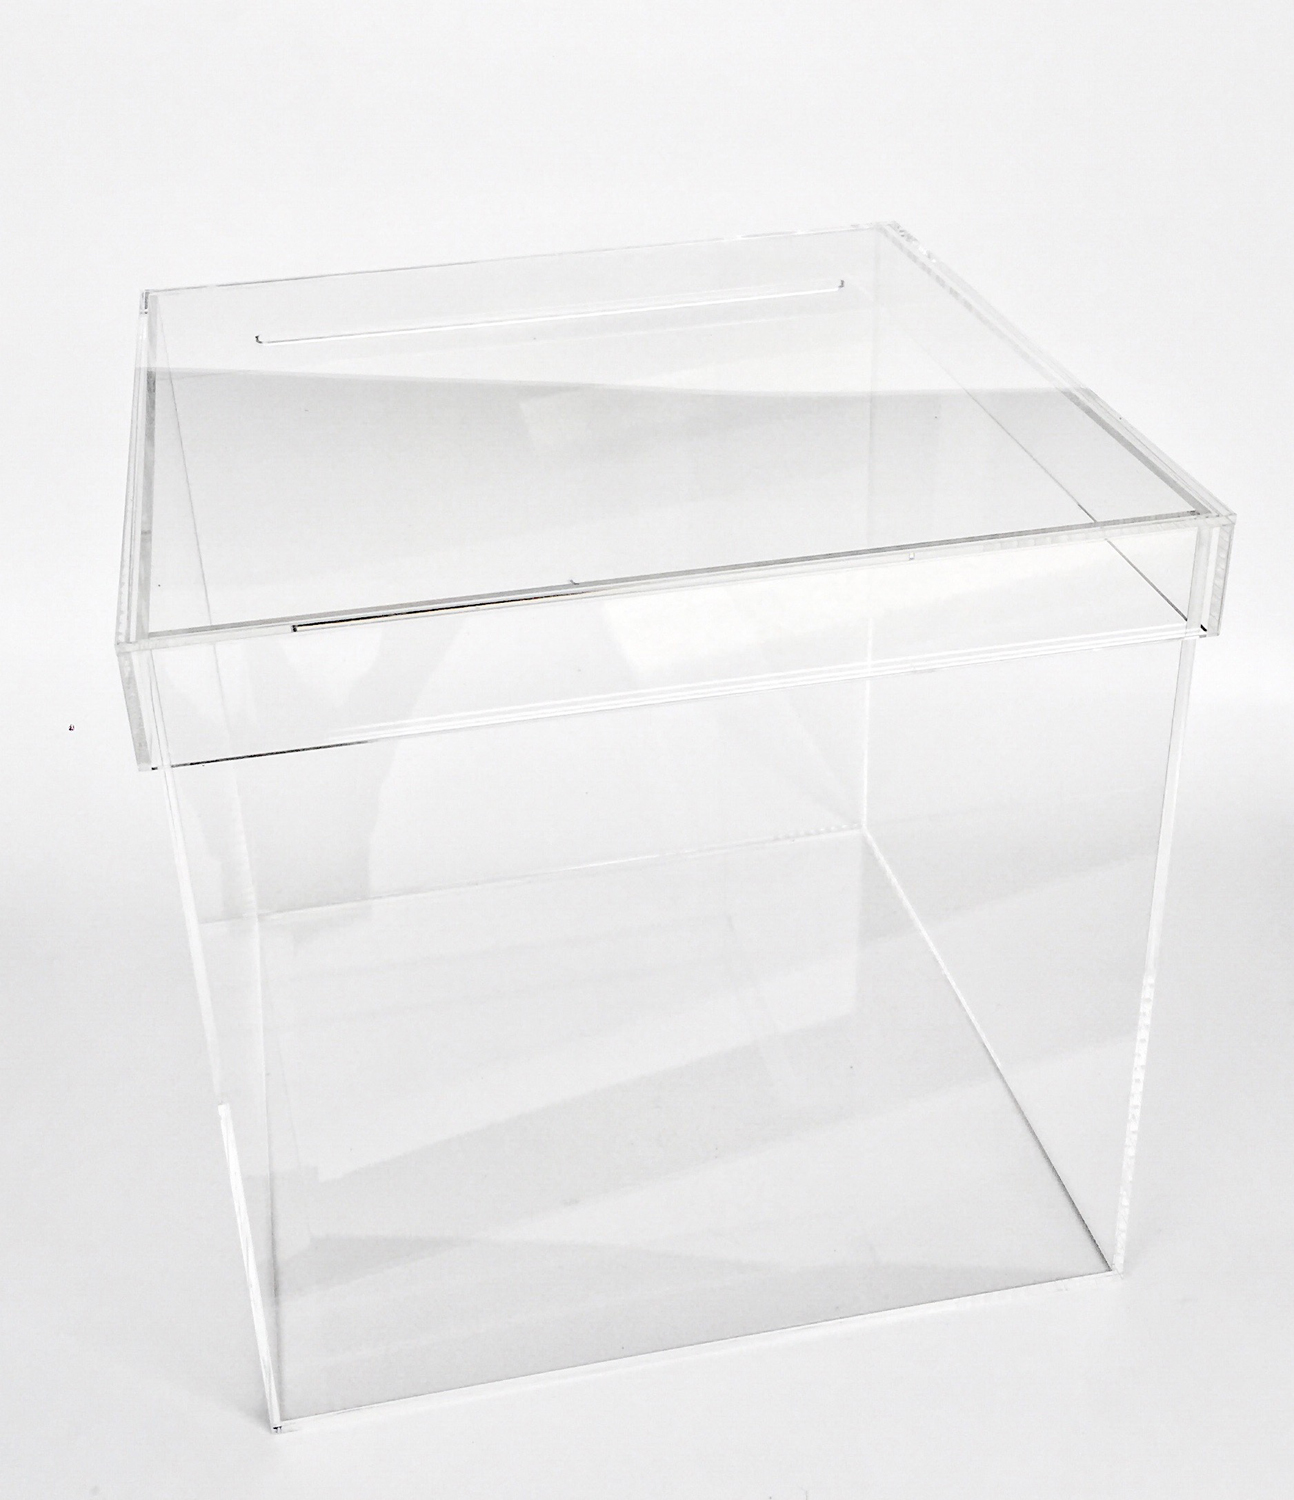 RENTAL The Knot Acrylic Card Box For Wedding Gift Box